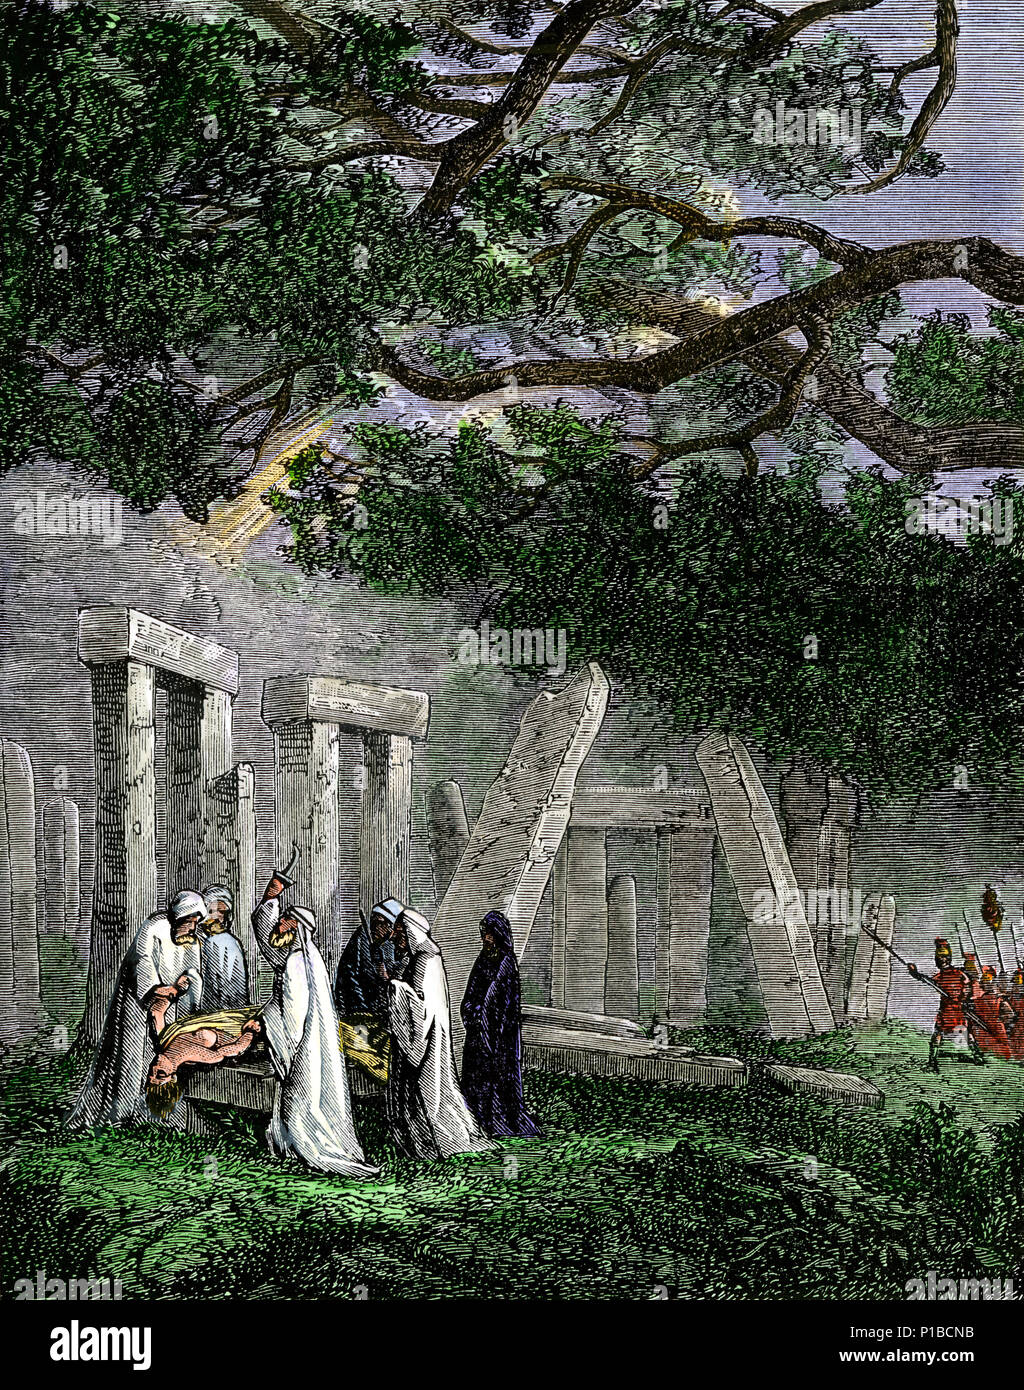 Druid human sacrifice at Stonehenge stopped by Roman soldiers. Hand-colored woodcut - Stock Image